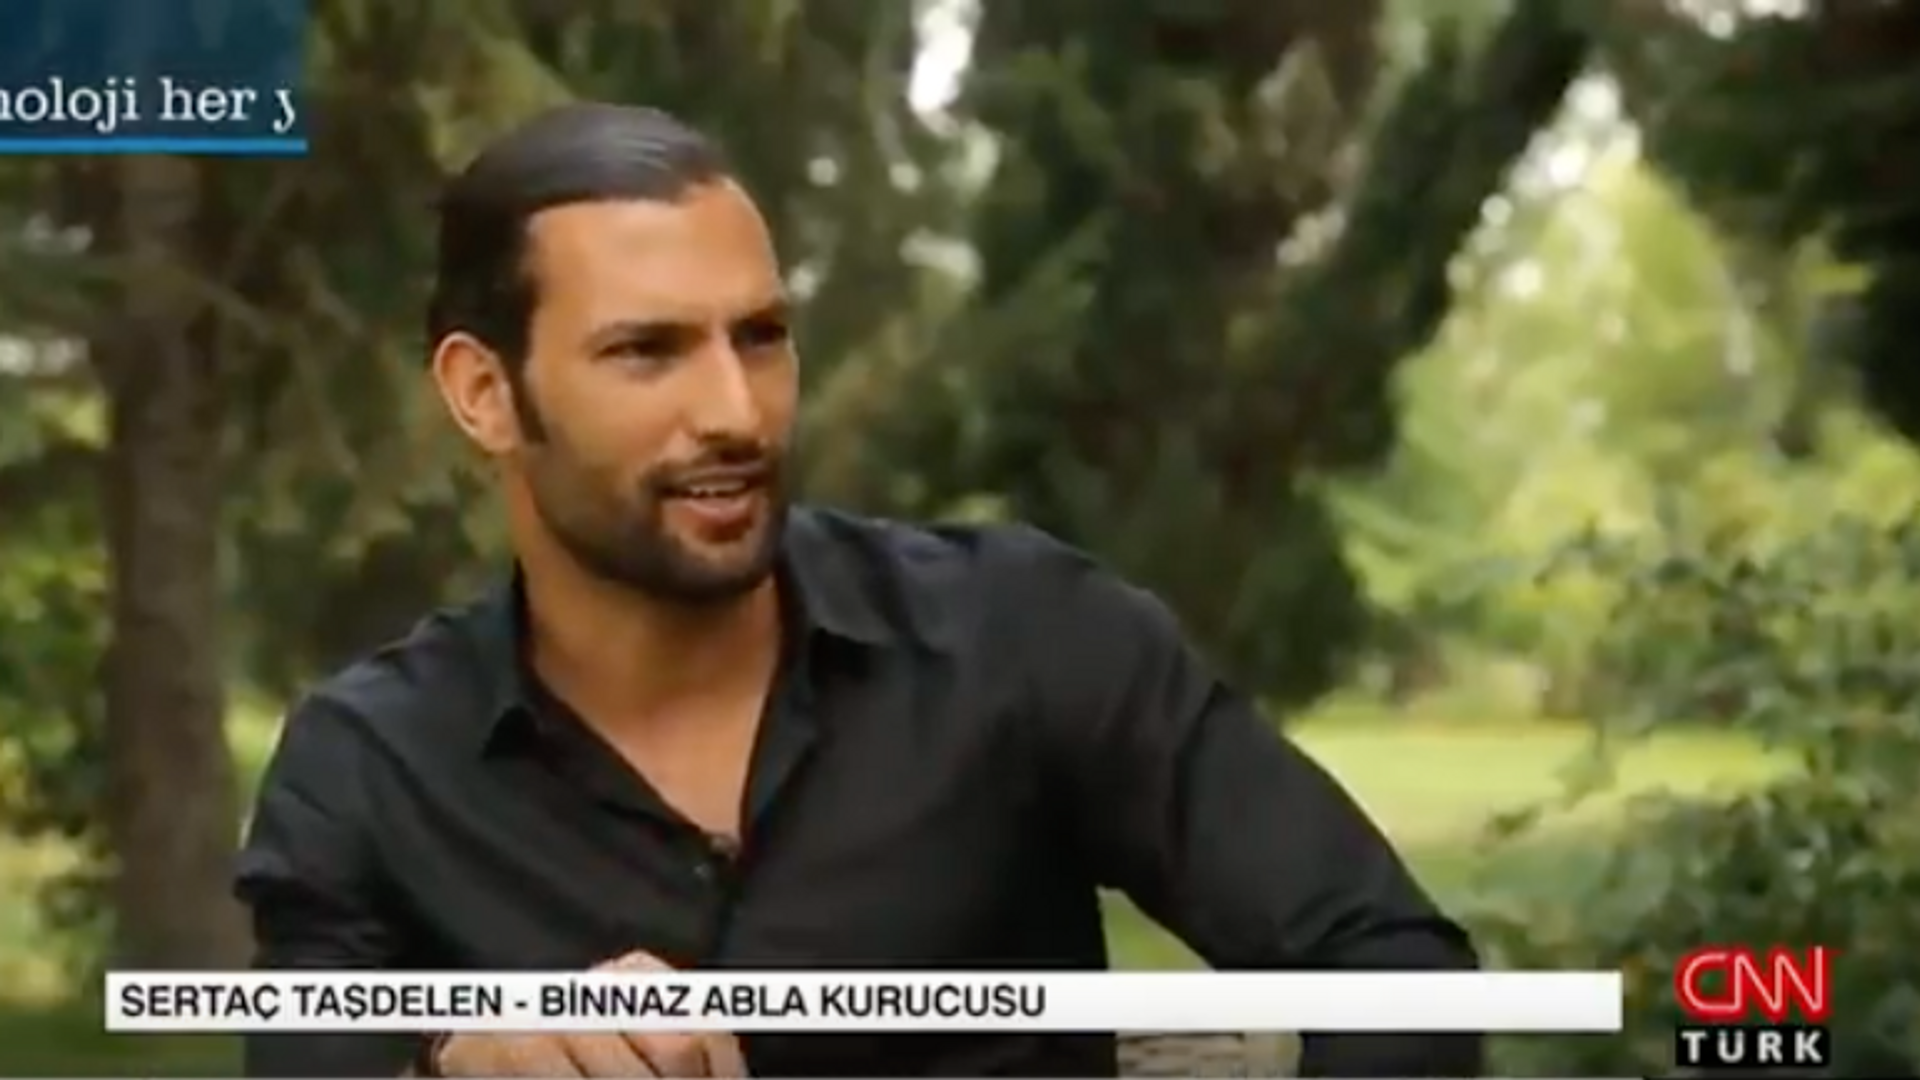 CNN Turk Interview